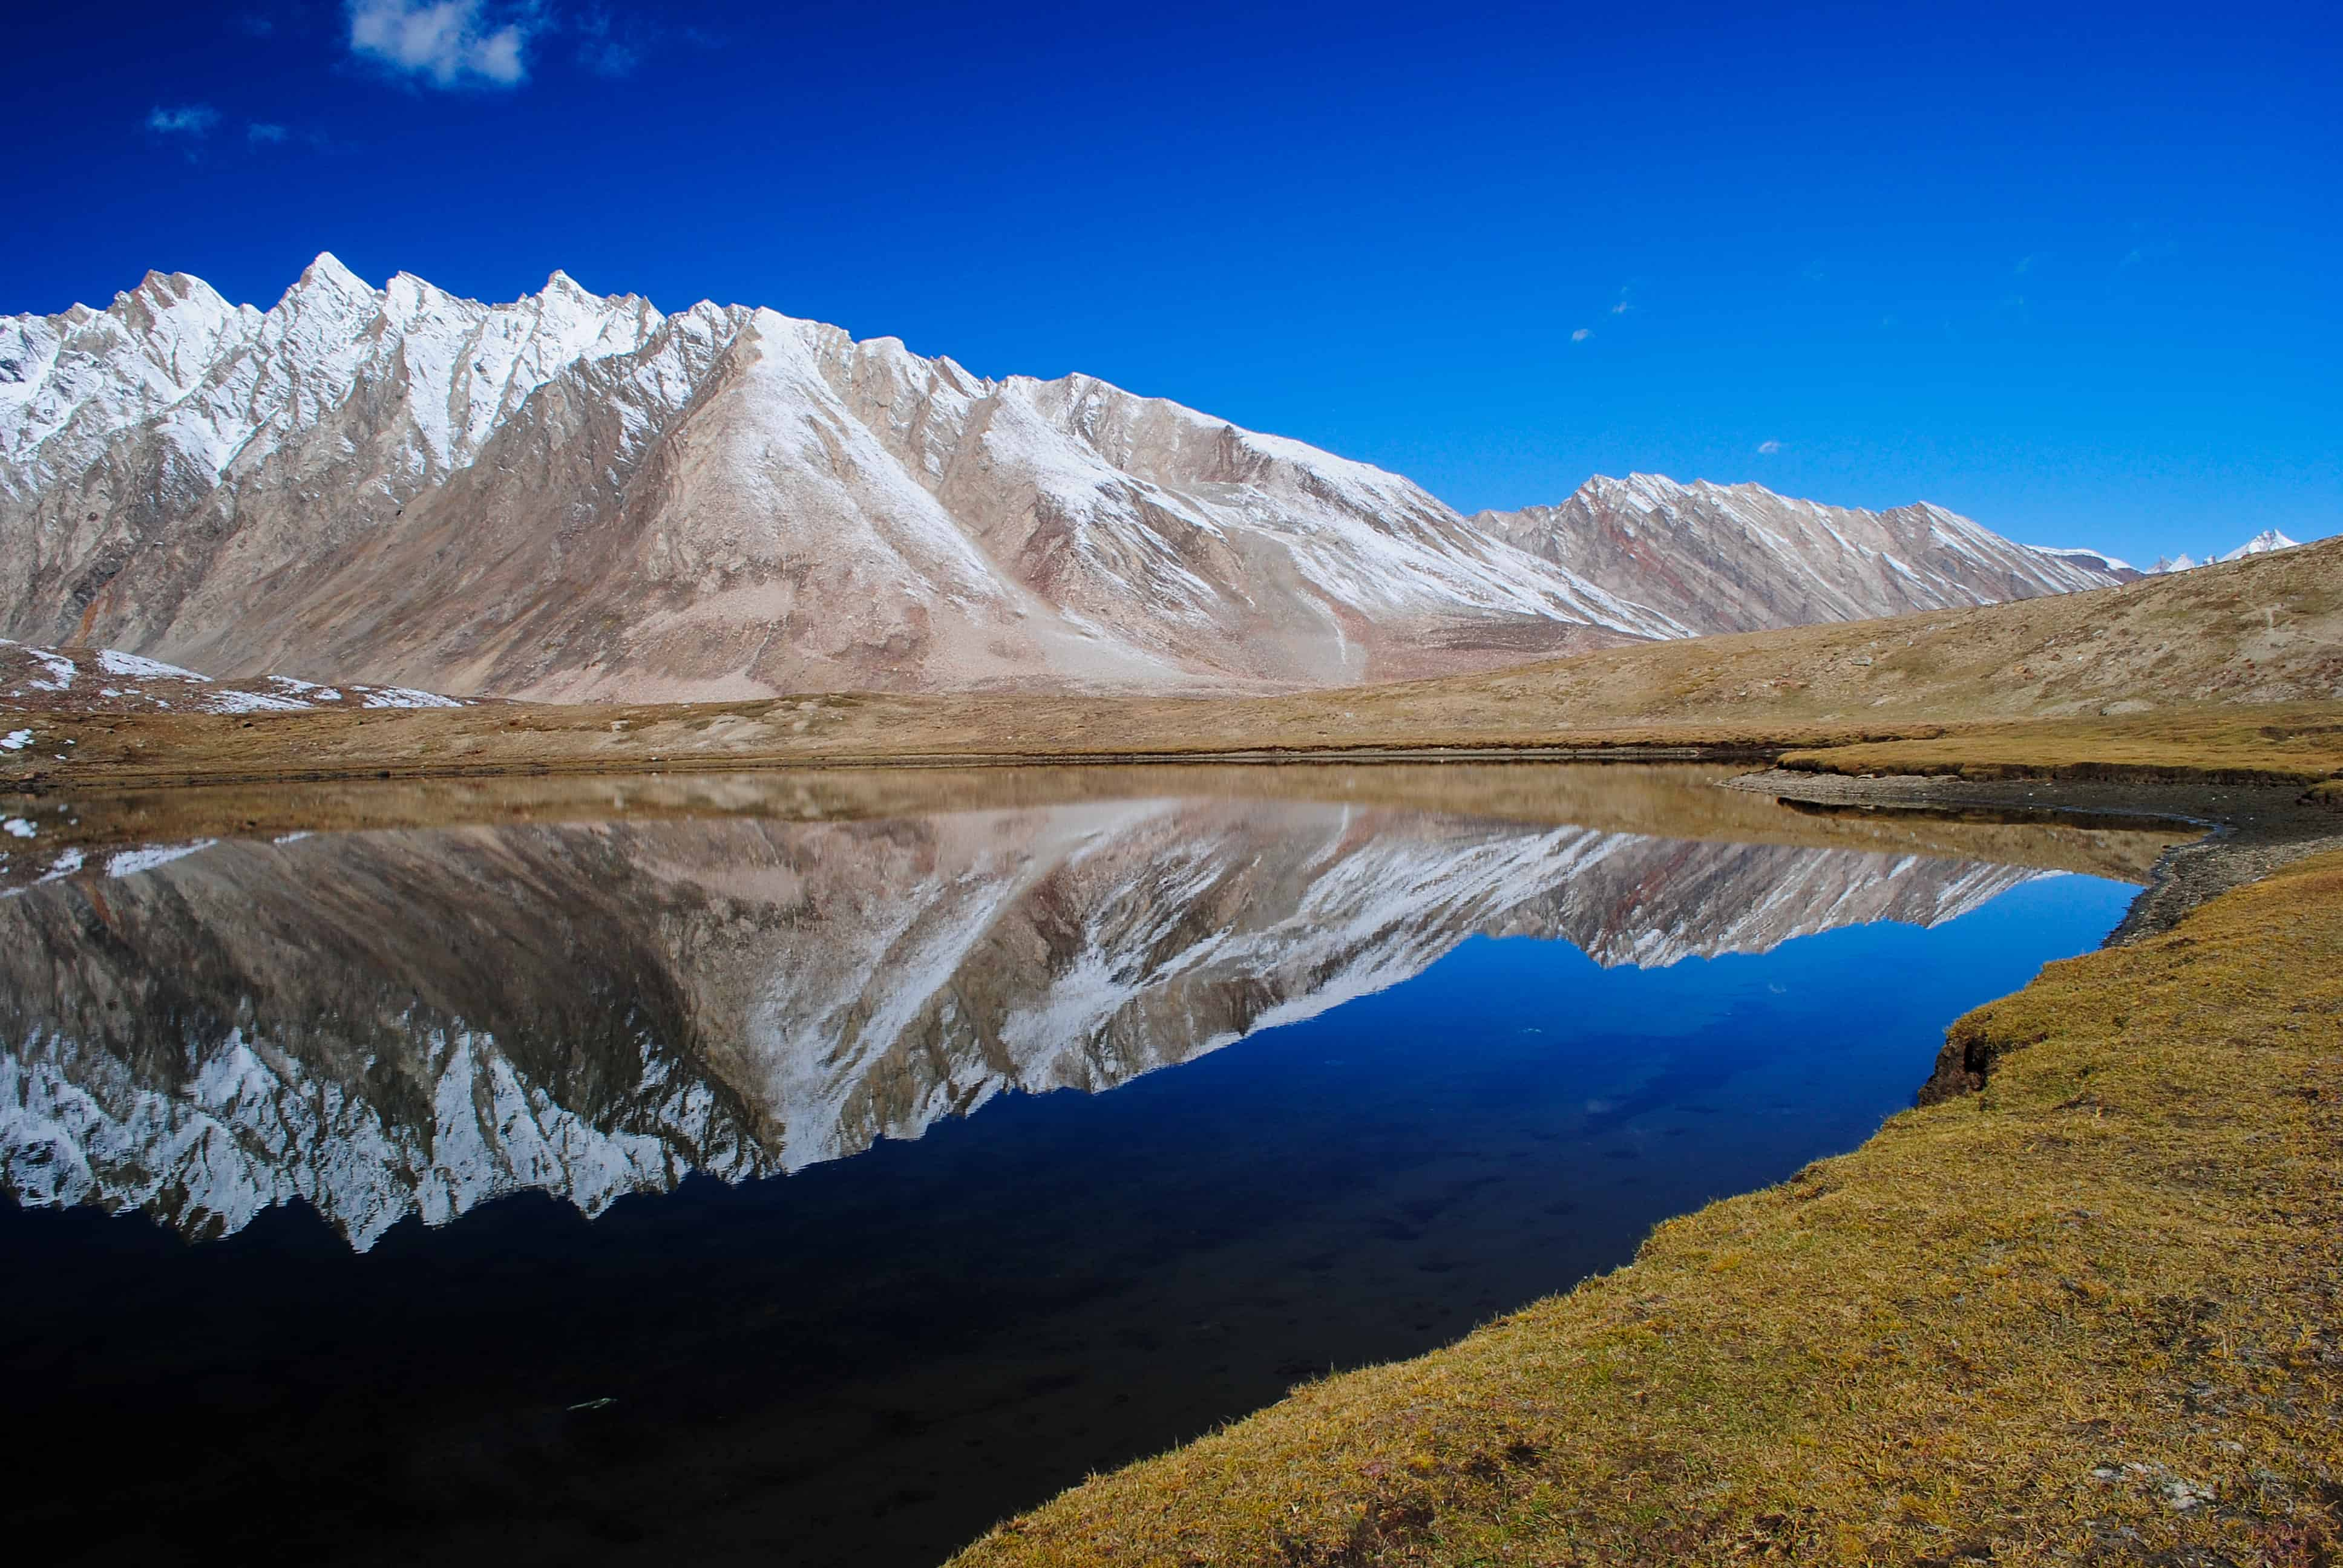 Some Good Options of Stays in Spiti Valley / Kinnaur Valley